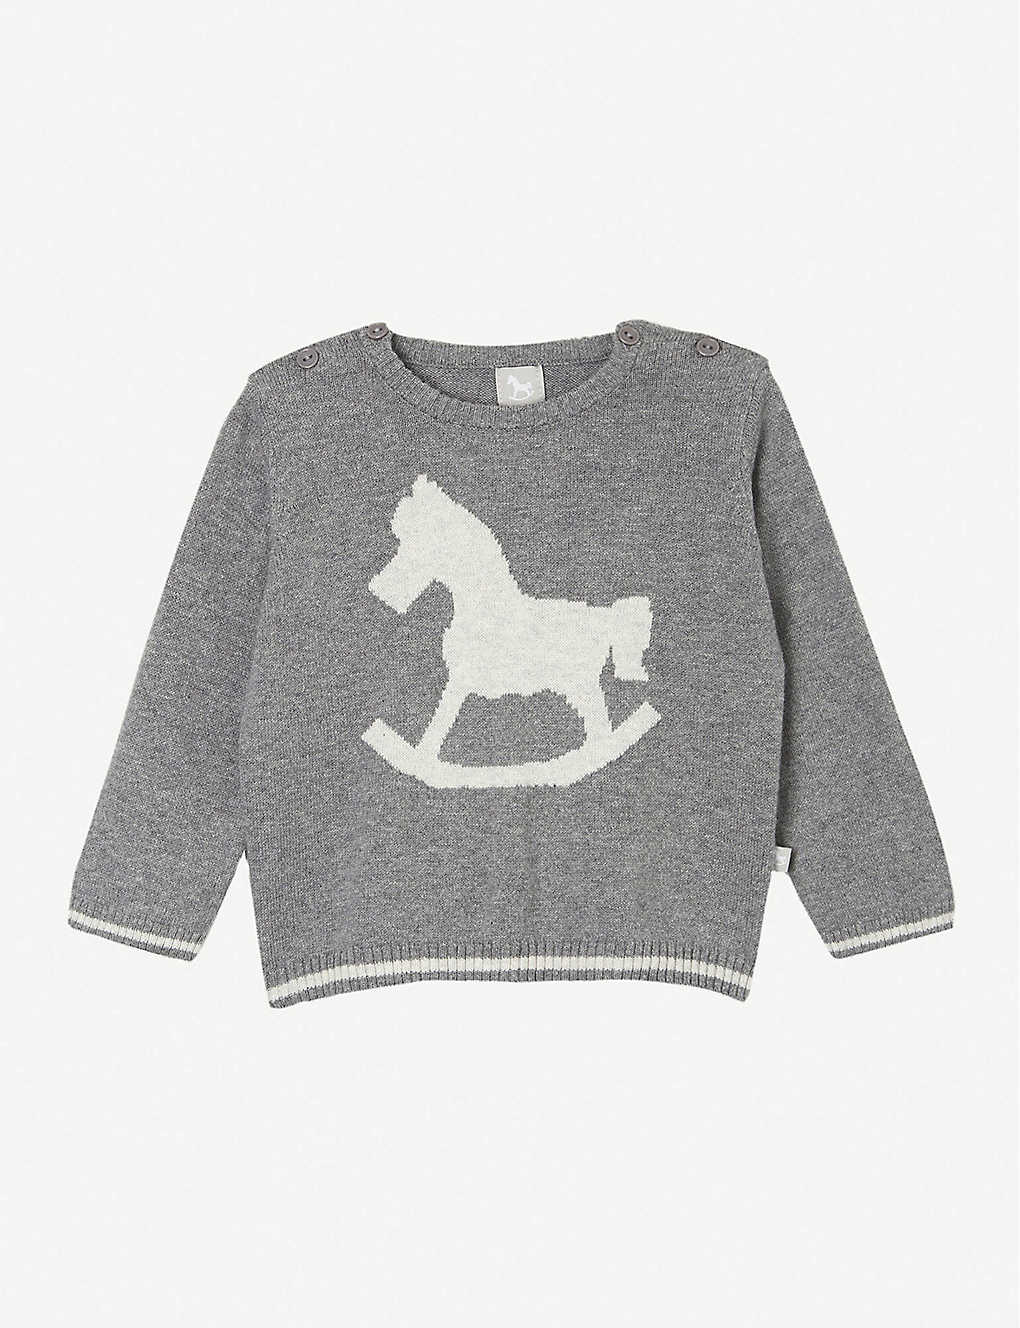 THE LITTLE TAILOR: Rocking horse jumper 0-12 months